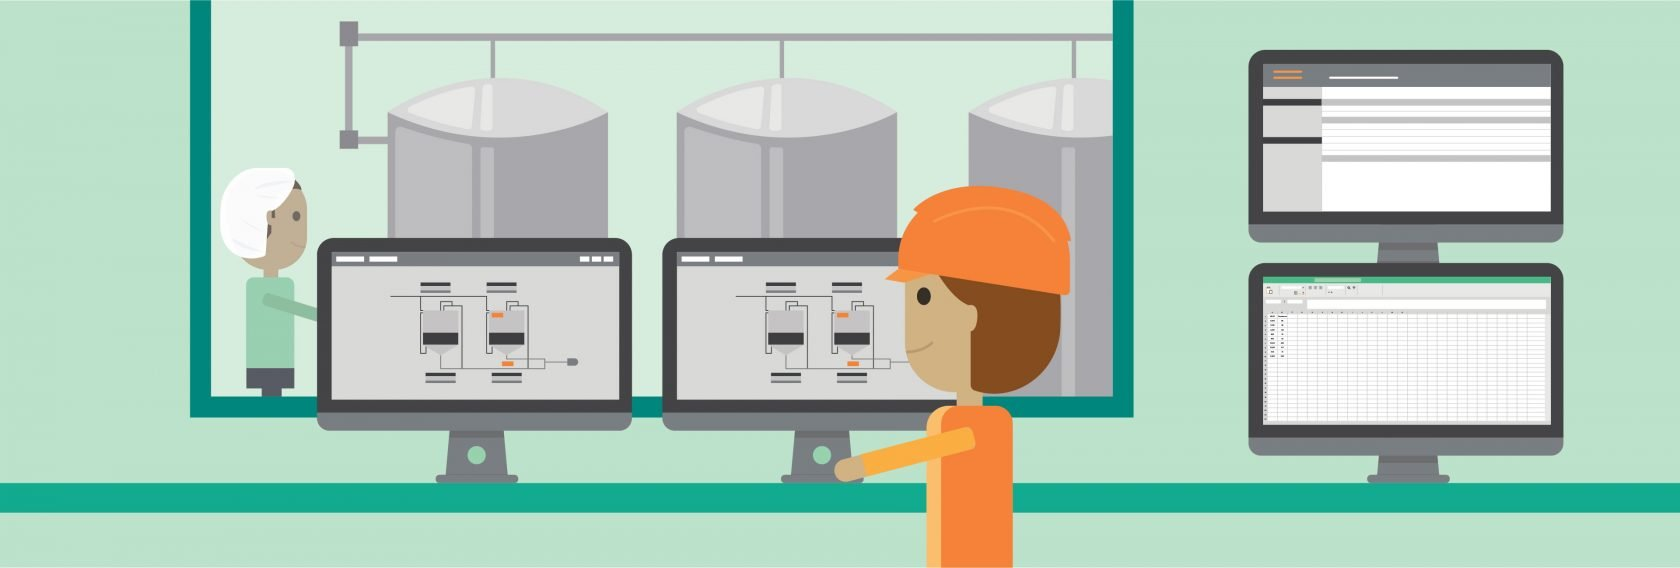 illustration of control room in dairy processing plant